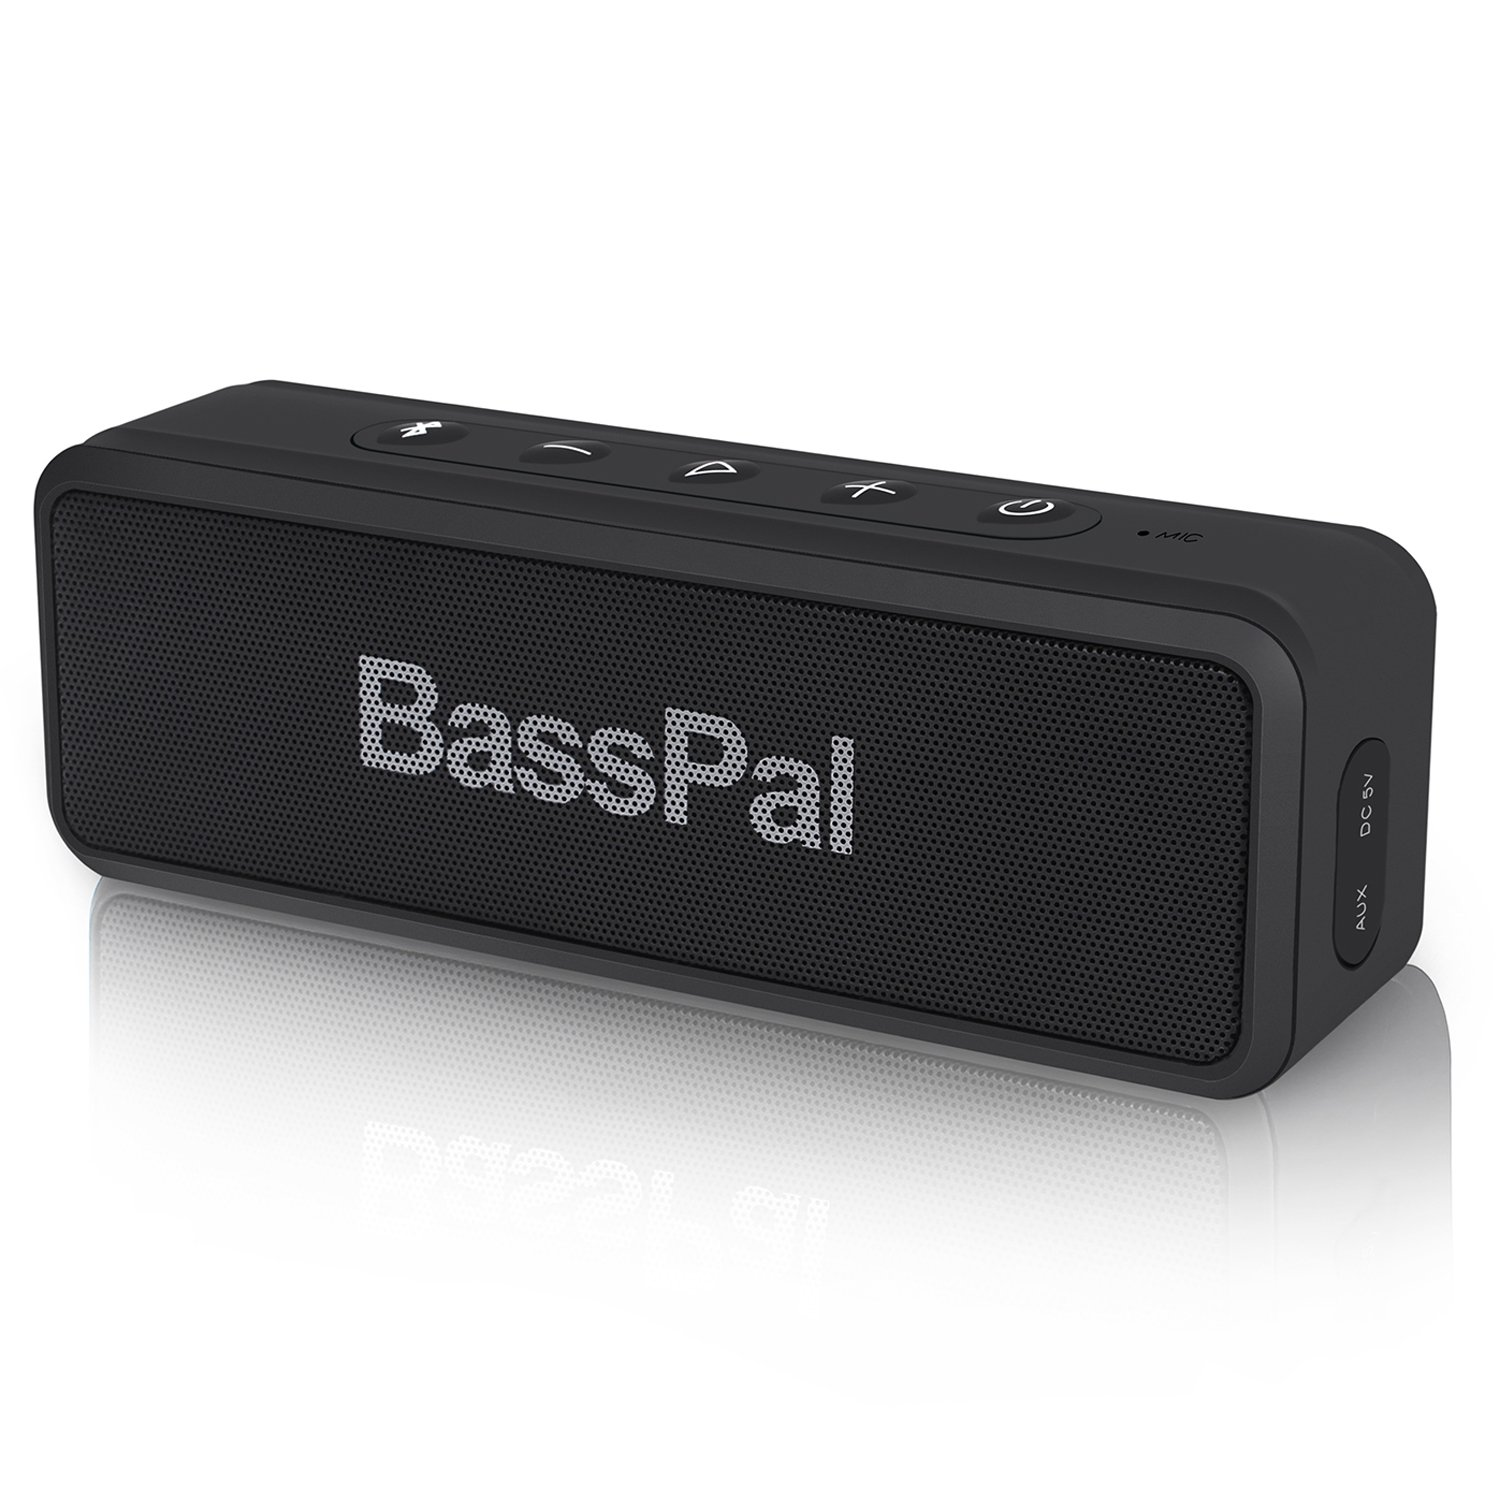 BassPal SoundRo X3 Portable Bluetooth Speaker with Loud Stereo Sound, Enhanced Bass, 24-Hour Playtime, 66 ft Bluetooth Range, Built-In Mic, Waterproof Wireless Speaker for Outdoors, Party, Travel by BassPal